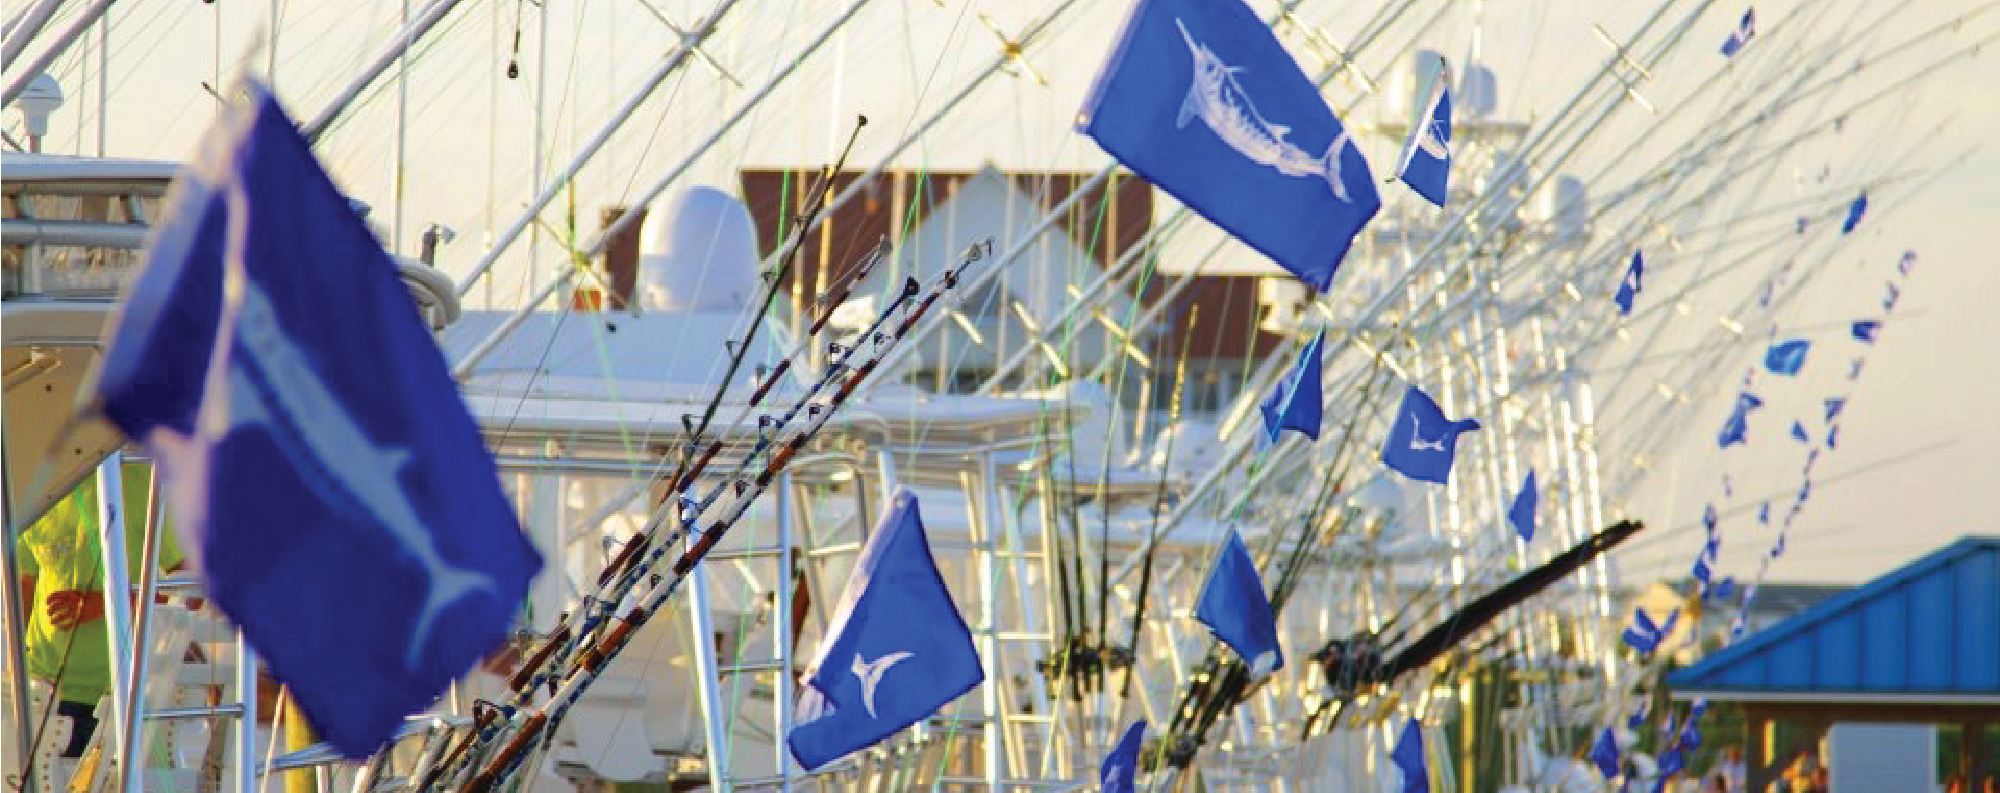 Fishing Boats Flying Marlin Flags